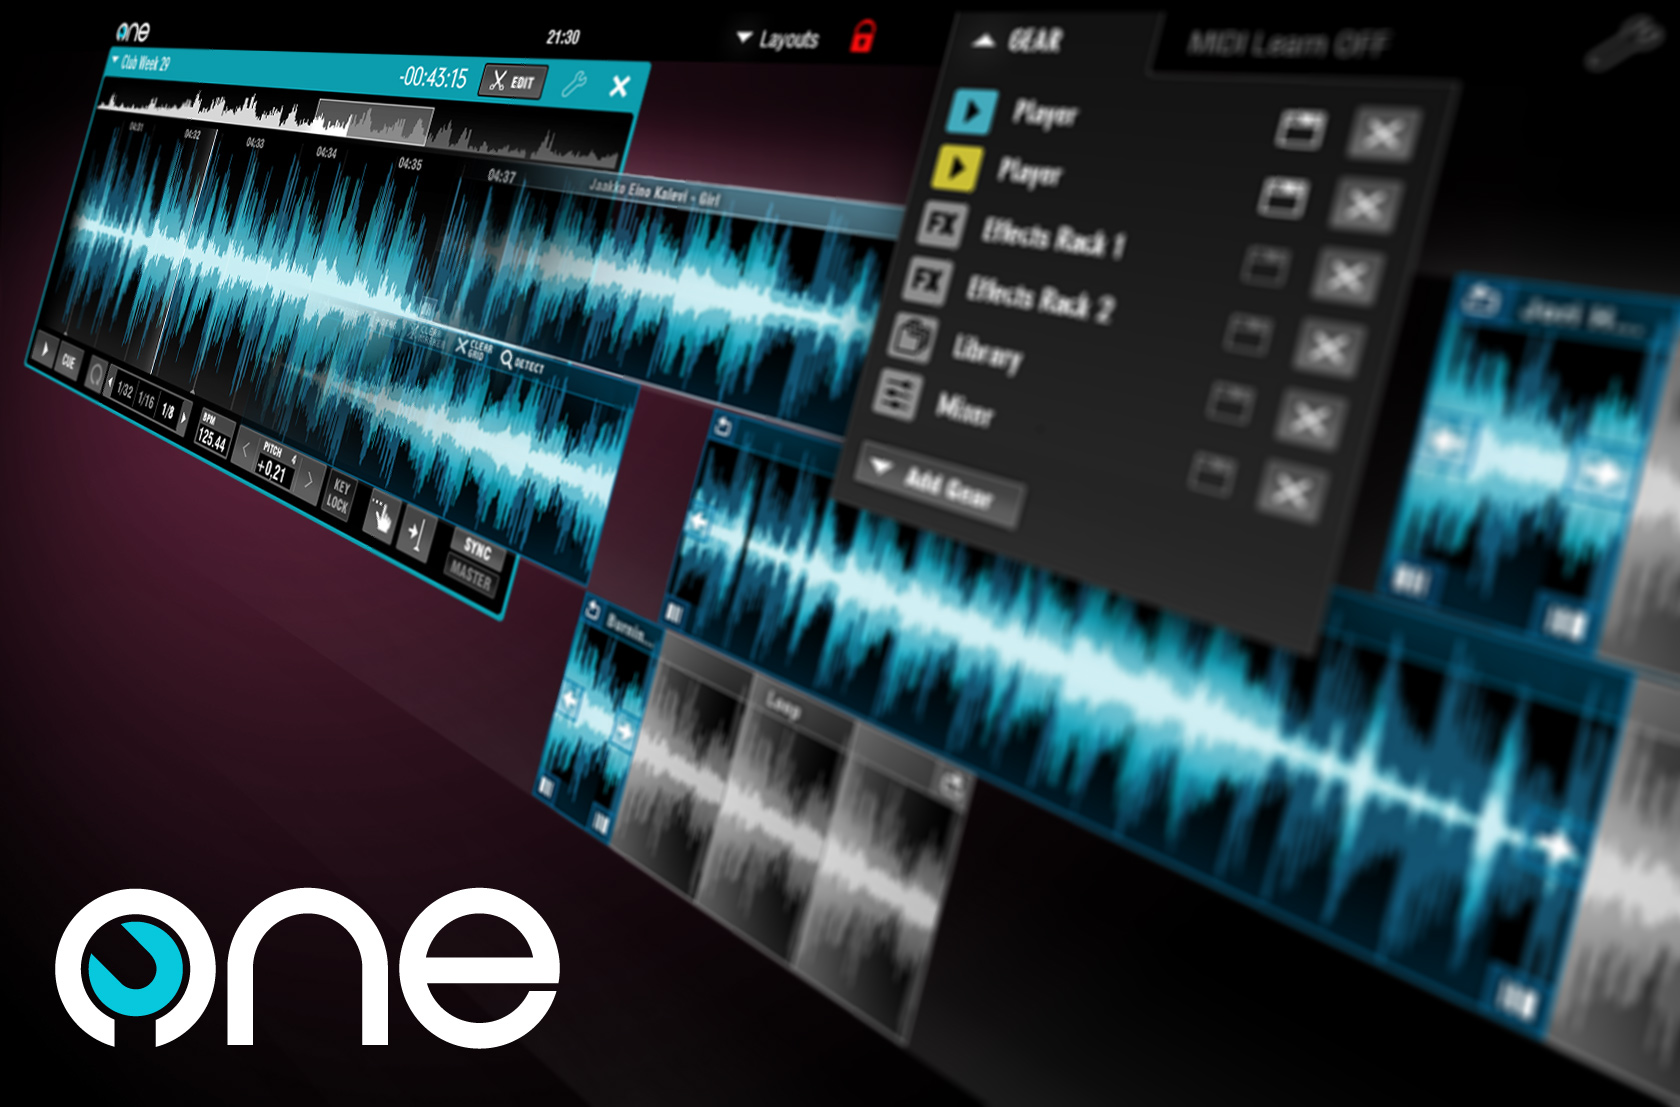 One DJ Free is a lite version of One DJ that lets you try out the software at its most bare bones state without any time limitations.